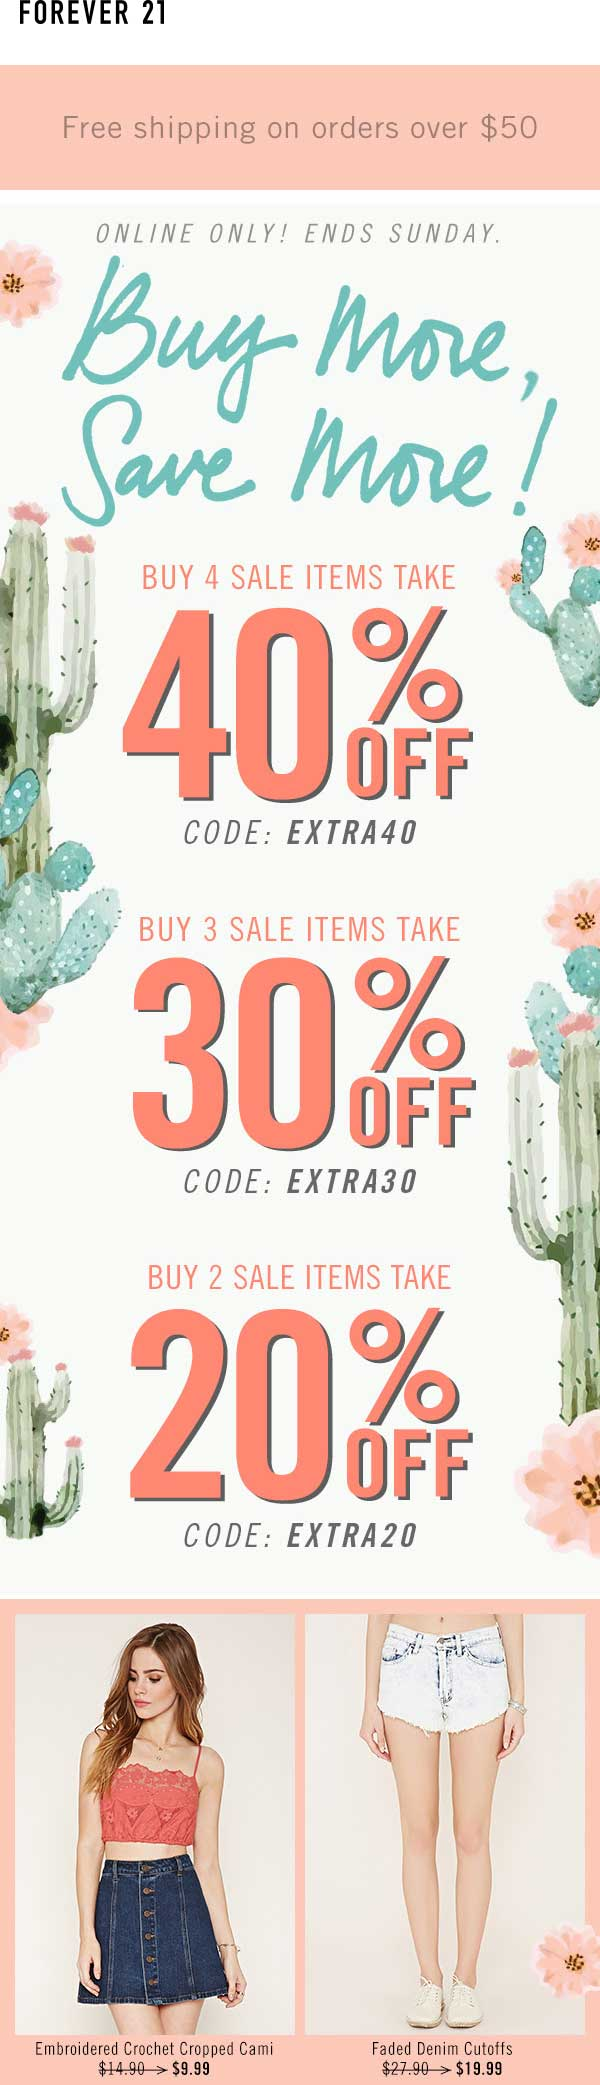 Forever 21 Coupon April 2017 20-40% off sale items online at Forever 21 via promo codes EXTRA20, EXTRA30 & EXTRA40